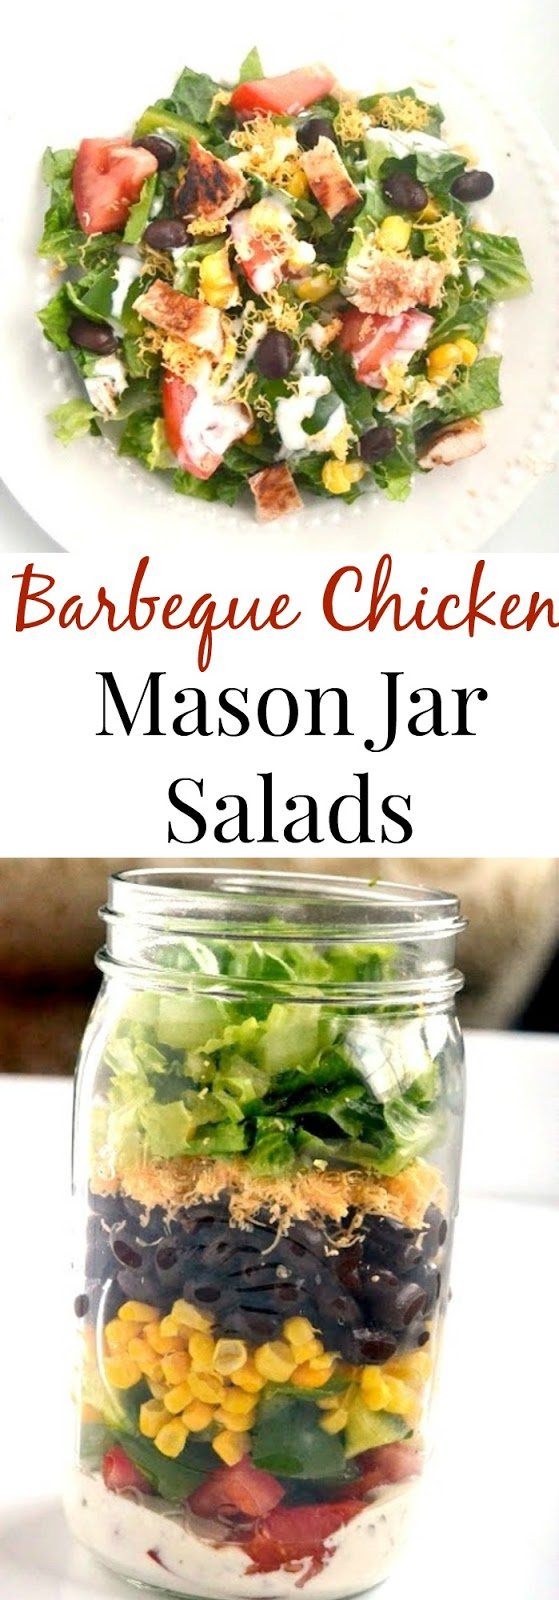 These barbeque chicken mason jar salads can be made ahead of time and enjoyed throughout the week! They are filling with BBQ chicken, black beans, corn, cheddar cheese and vegetables. www.nutritionistreviews.com